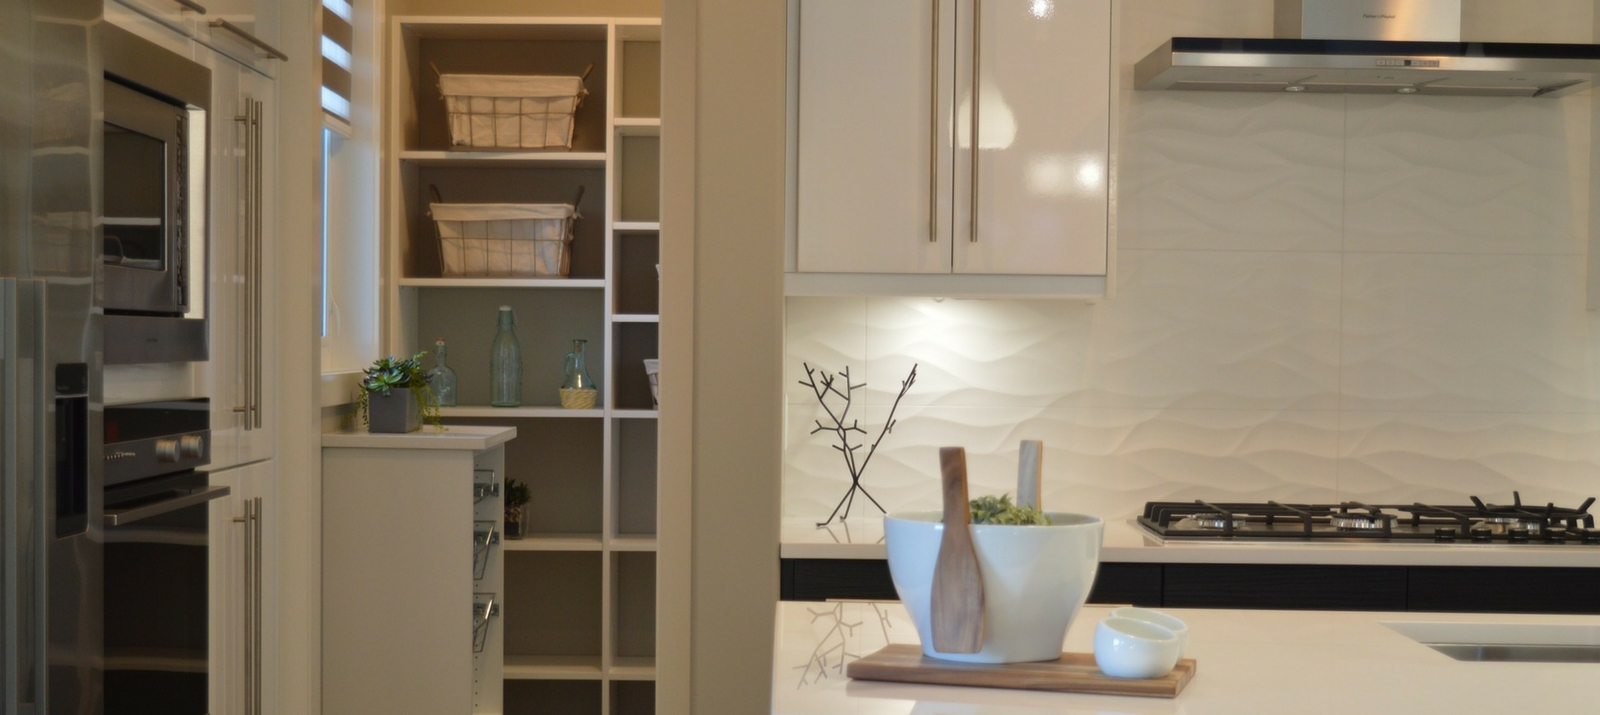 12 Next Level Ways To Organize Your Kitchen Cabinets Drawers And Pantry Organizing Storage